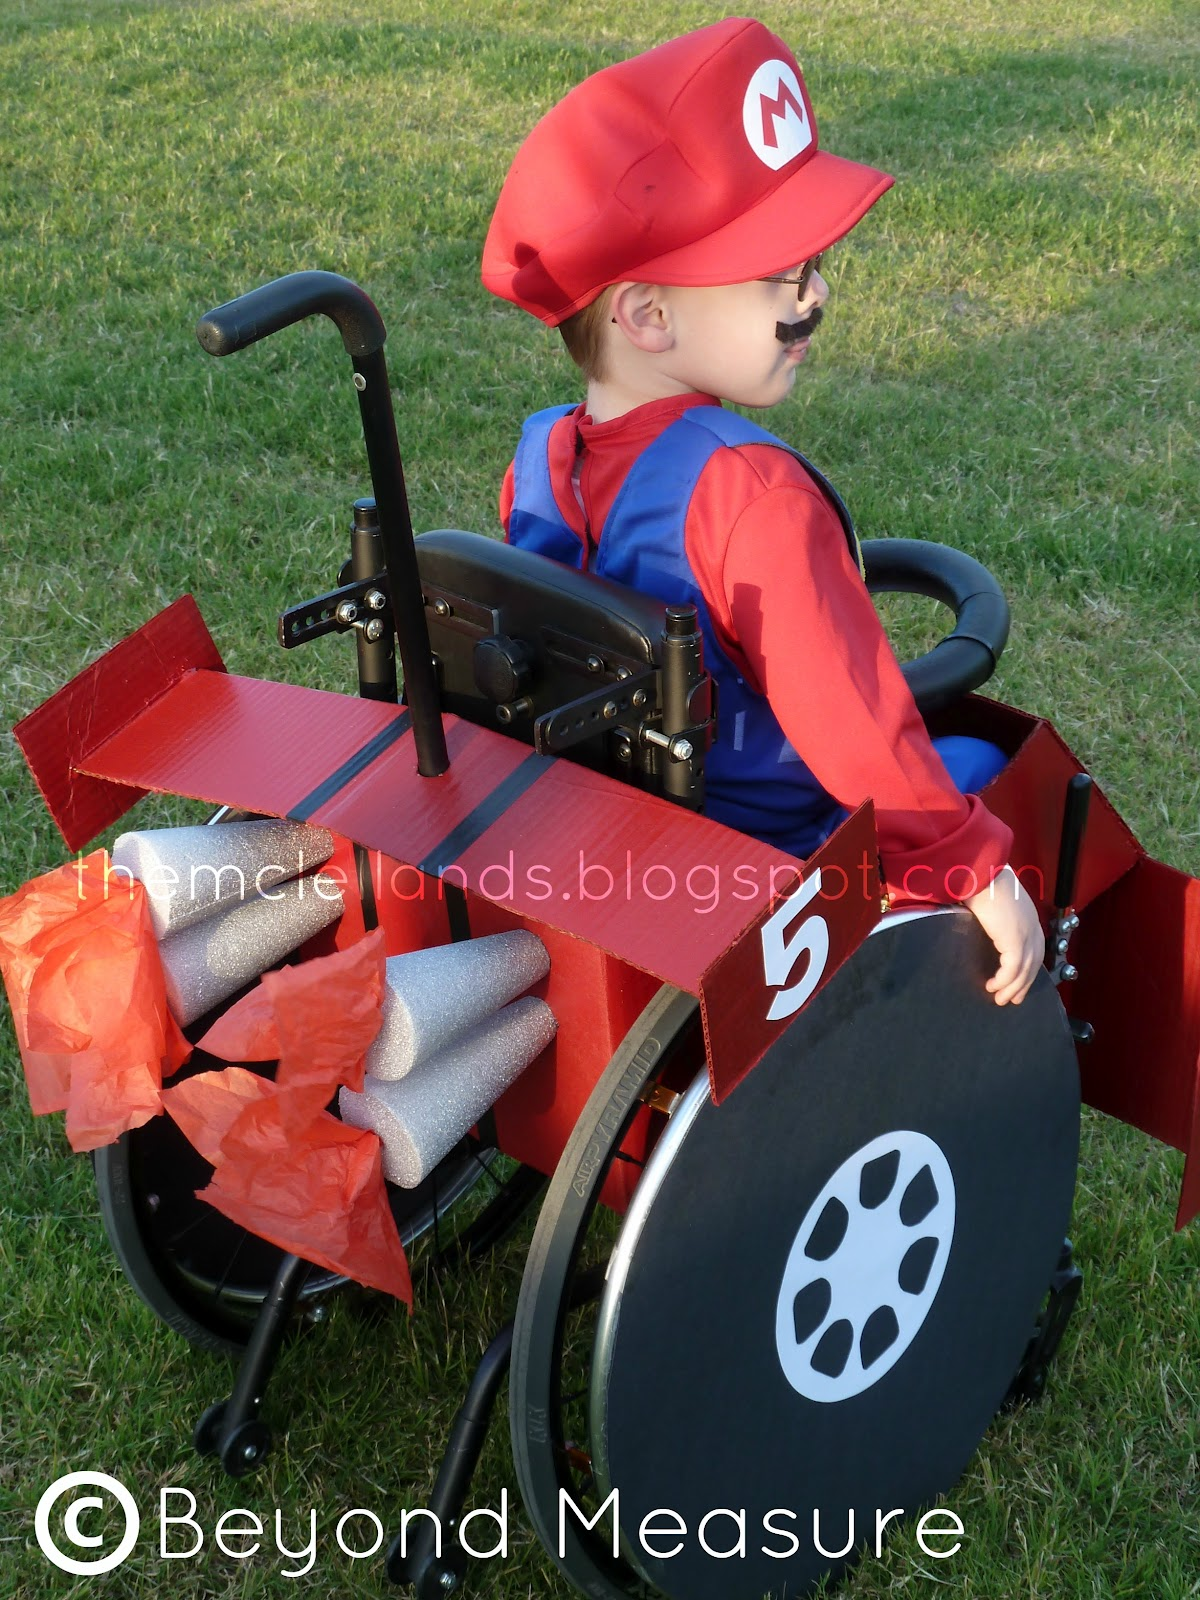 wheelchair mario revolving chair parts names beyond measure and luigi take over halloween